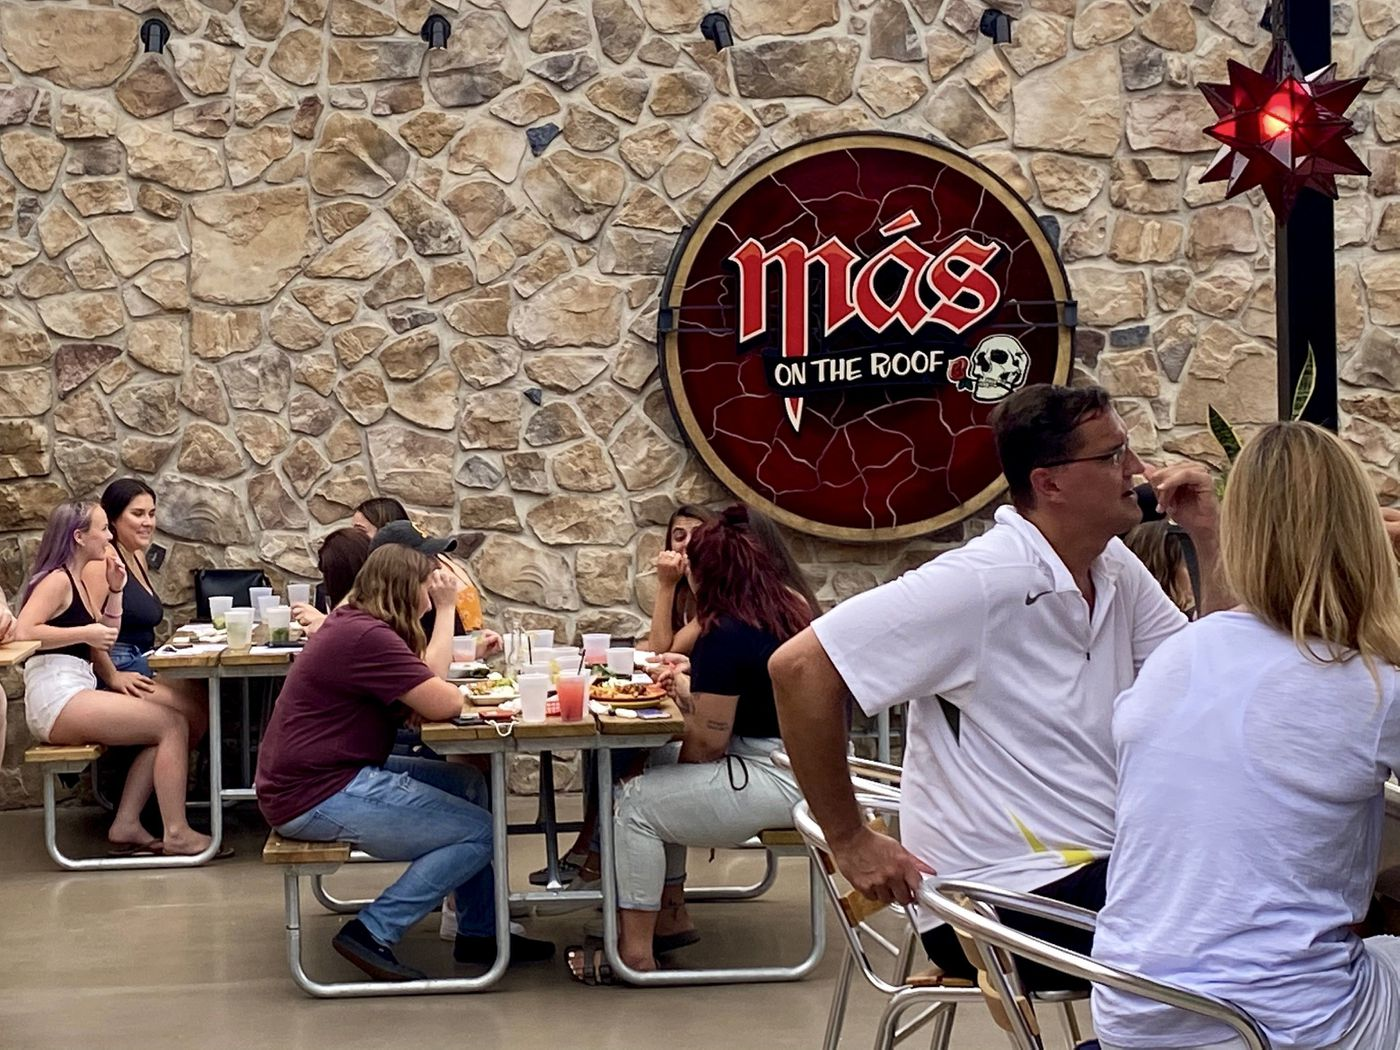 As State Restricts Indoor Dining, Rooftop at Más in West Chester a Popular Option